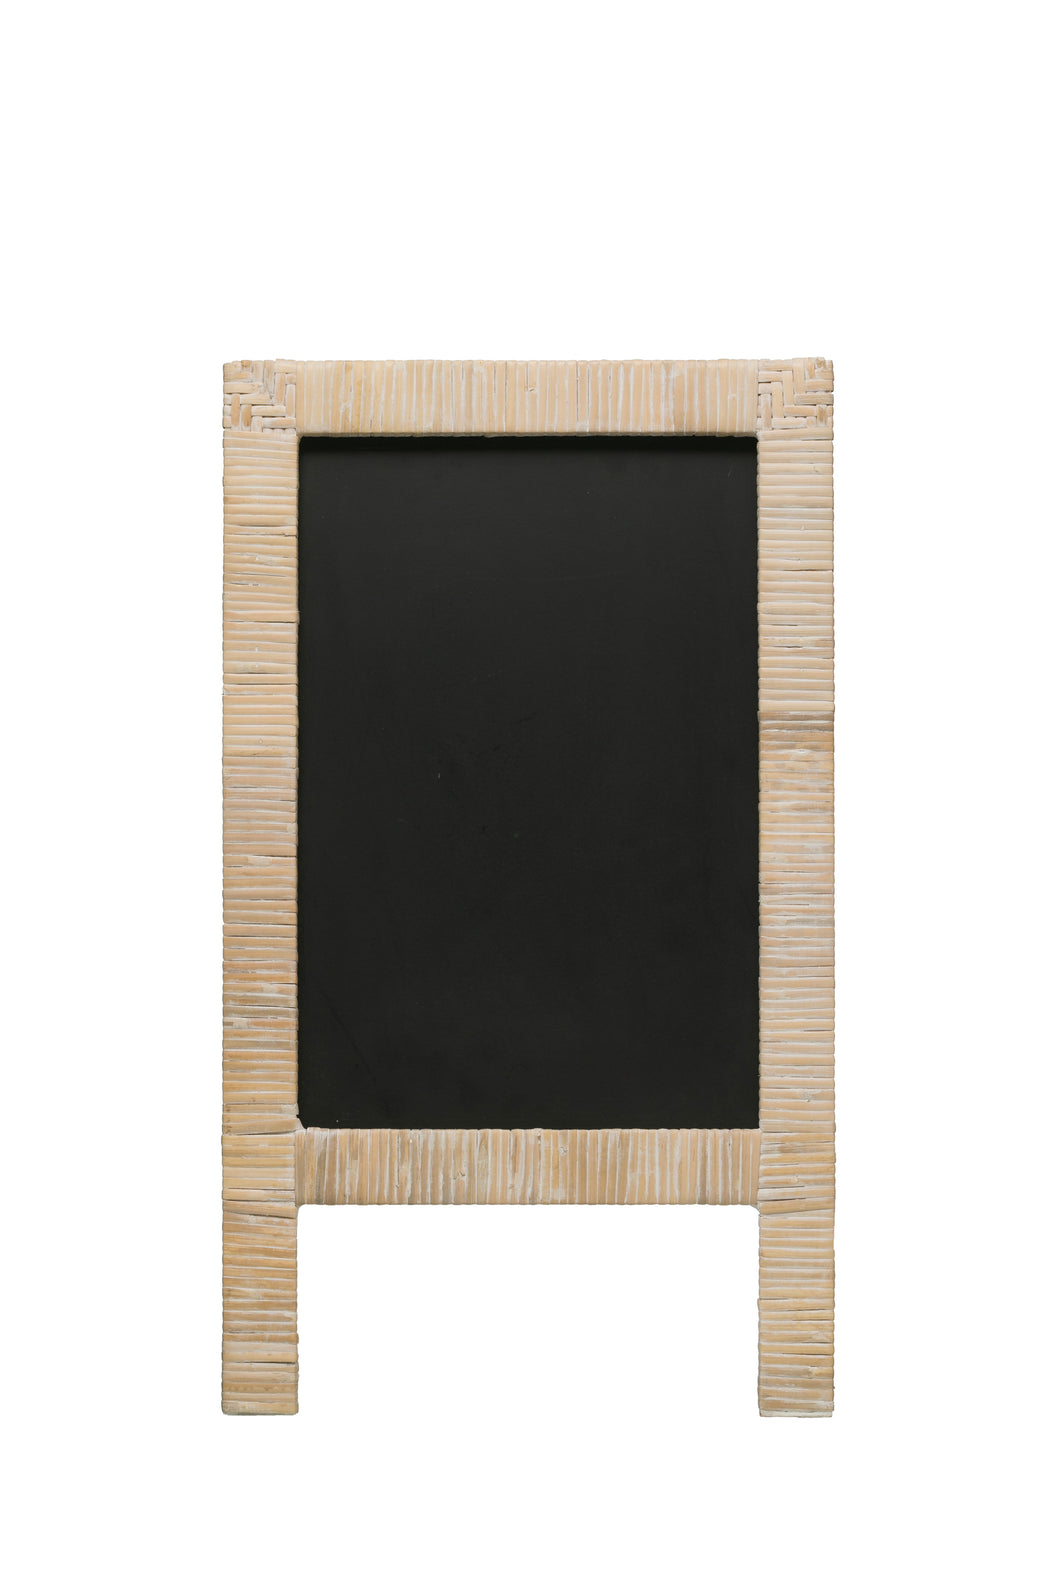 Over The Moon Wrapped Rattan & Wood Chalkboard Easel